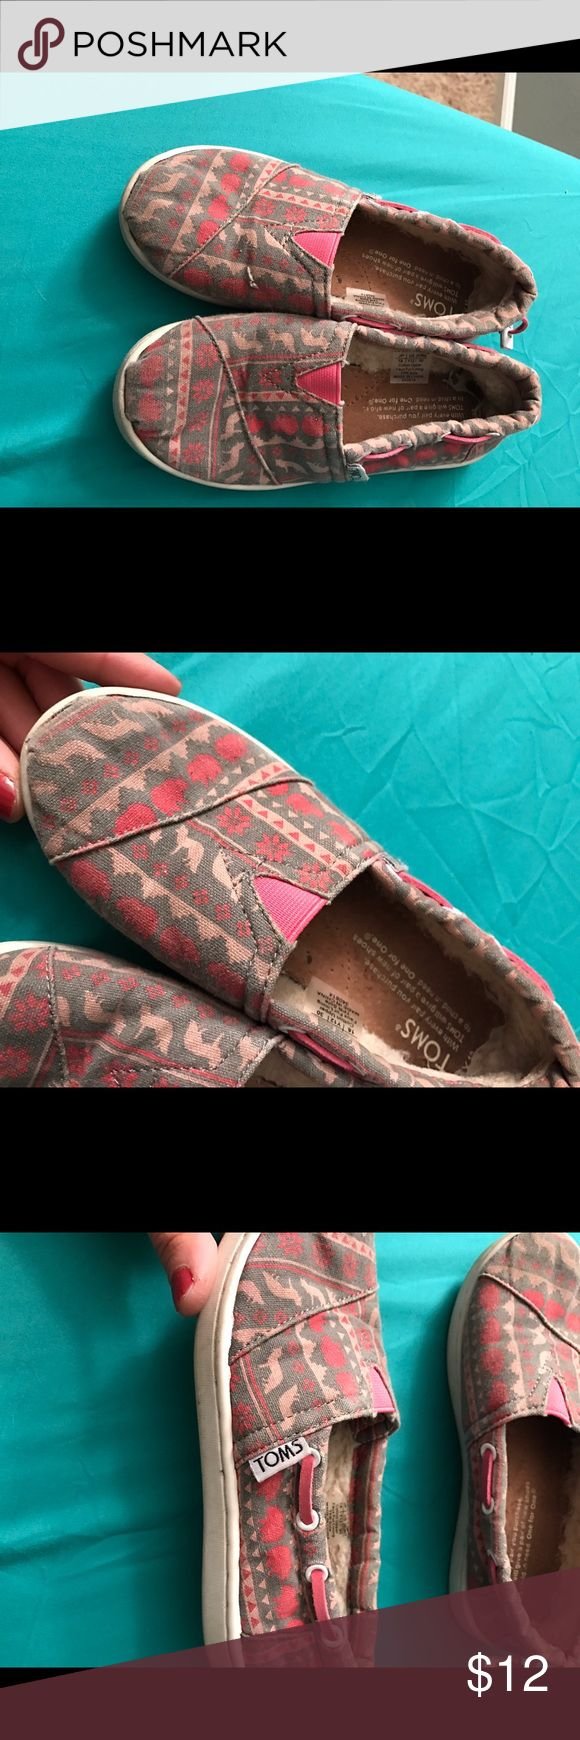 Girls Toms 12 These Toms are so comfy for their feet ! Lined with fur in the back for additional comfort. These are very well loved! A dusty look to them a bit but no stain or rips. Probably need to go through the wash. toms  Shoes Flats & Loafers